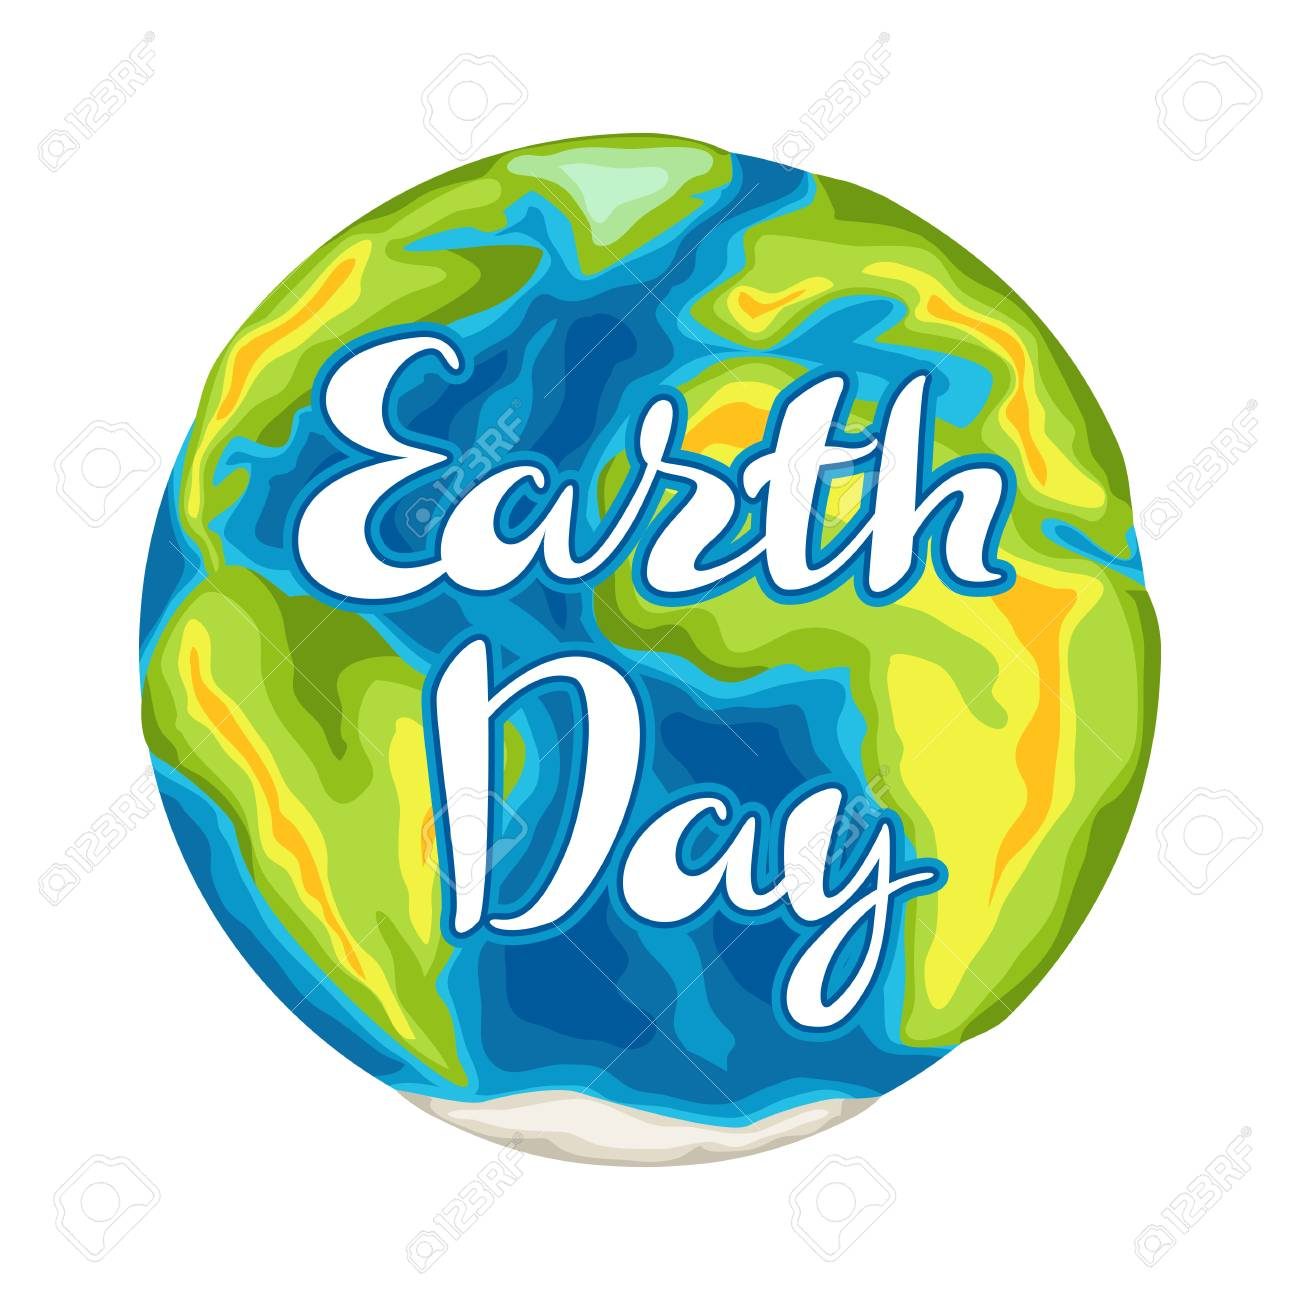 Happy Earth Day card. Illustration for environment safety celebration. - 121747860